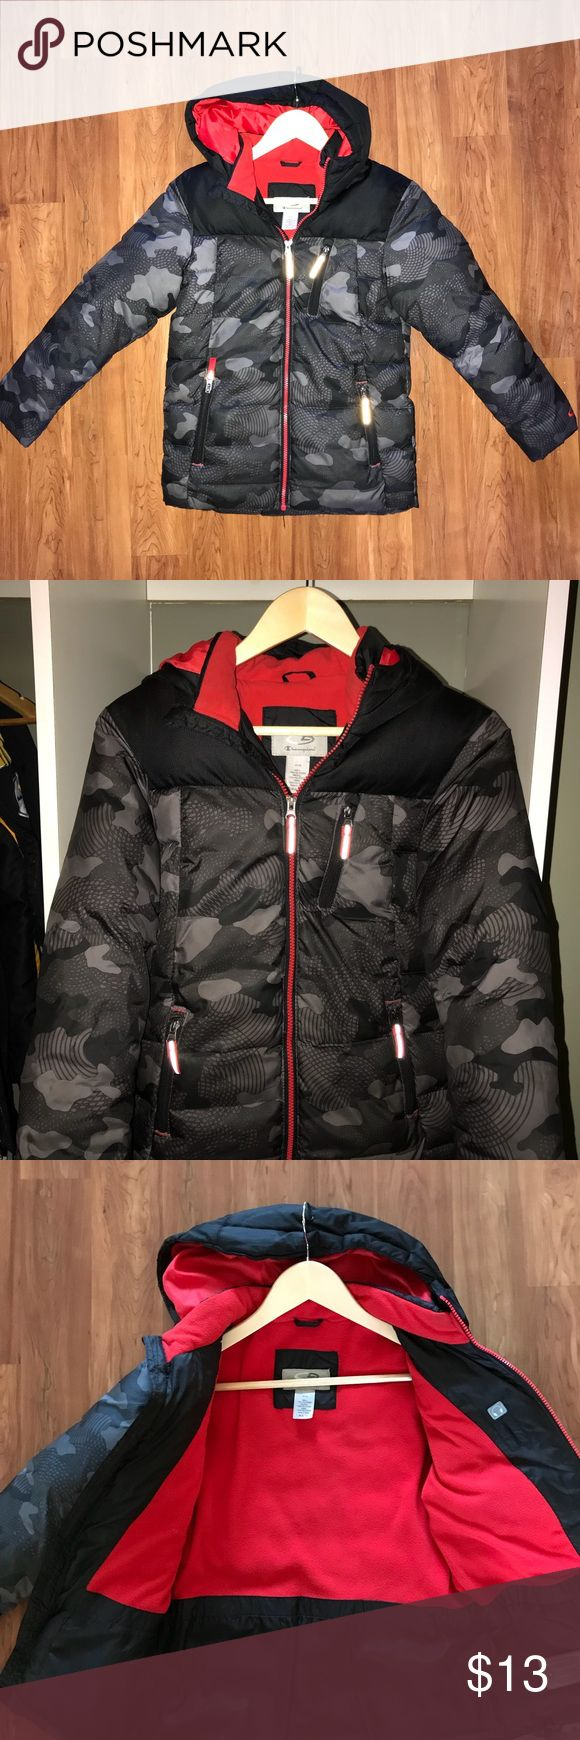 Boys winter coat Purchased at Target.  Excellent condition.  Worn a few times since my son refuses to wear a coat.  Very warm.  Fleece lined and hood is not removable.  Size Medium 8-10 Champion Jackets & Coats Puffers